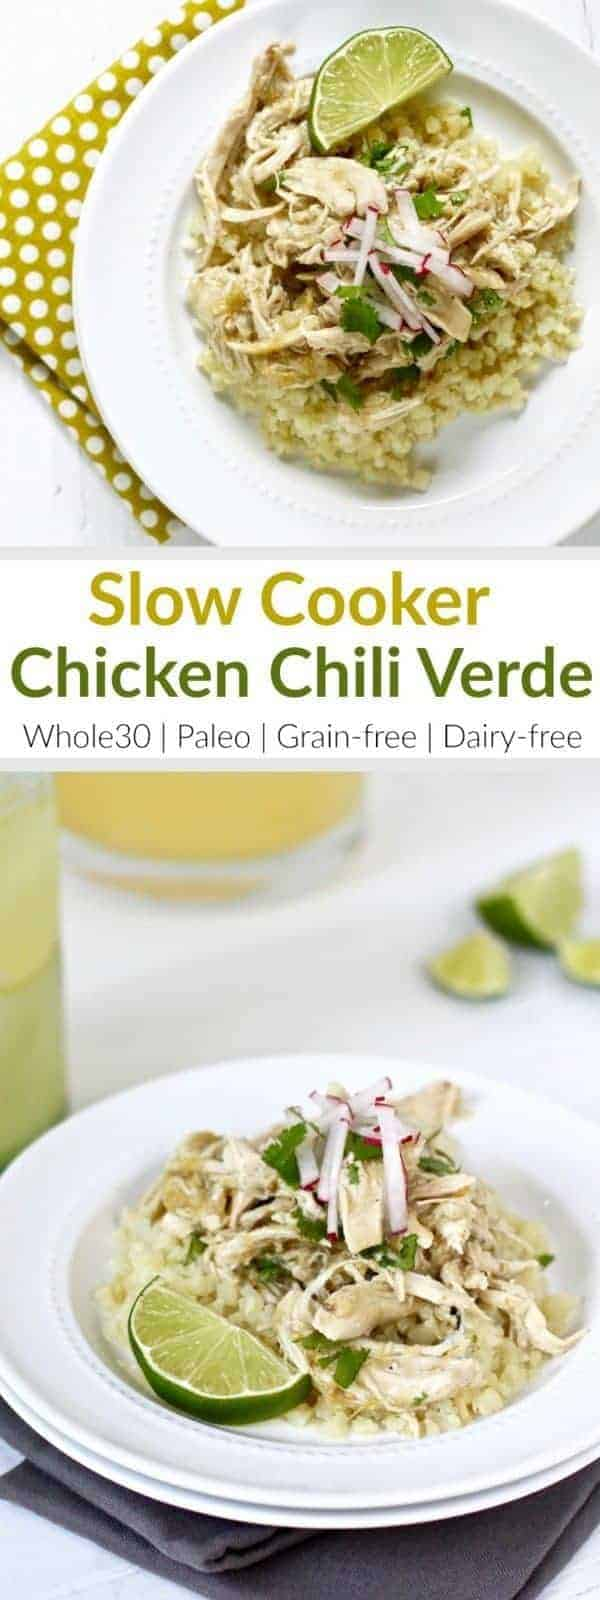 Slow Cooker Chicken Chili Verde   whole30 dinner recipes   paleo dinner recipes   grain-free dinner recipes   dairy-free dinner recipes   healthy dinner recipes   whole30 chicken recipes   paleo chicken recipes    The Real Food Dietitians #whole30dinner #whole30recipe #paleorecipe